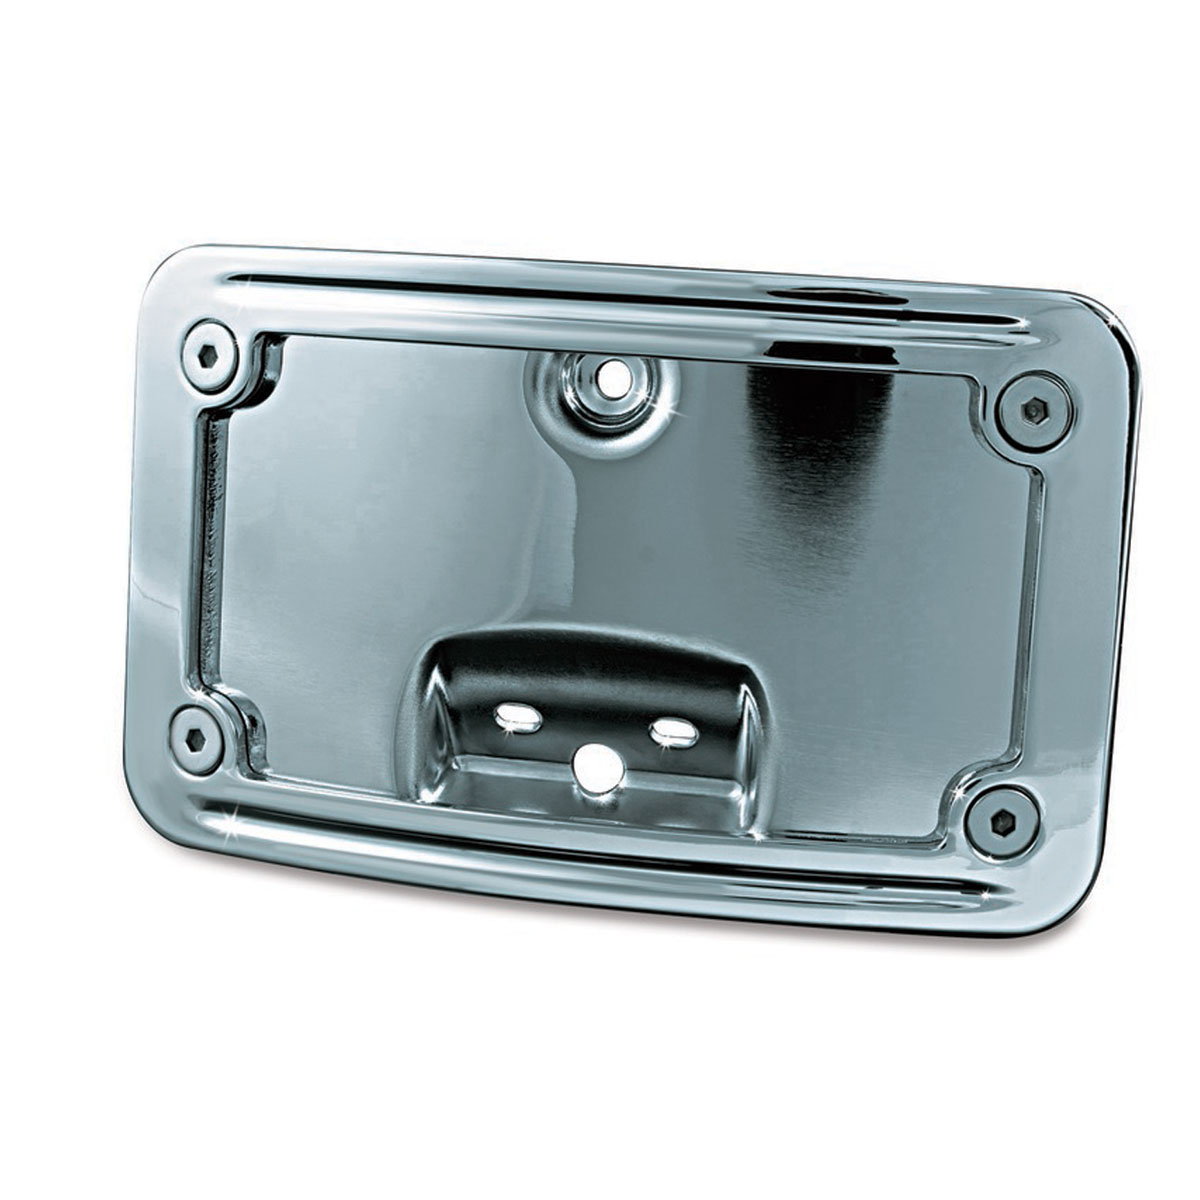 Kuryakyn Curved Laydown License Plate Mount